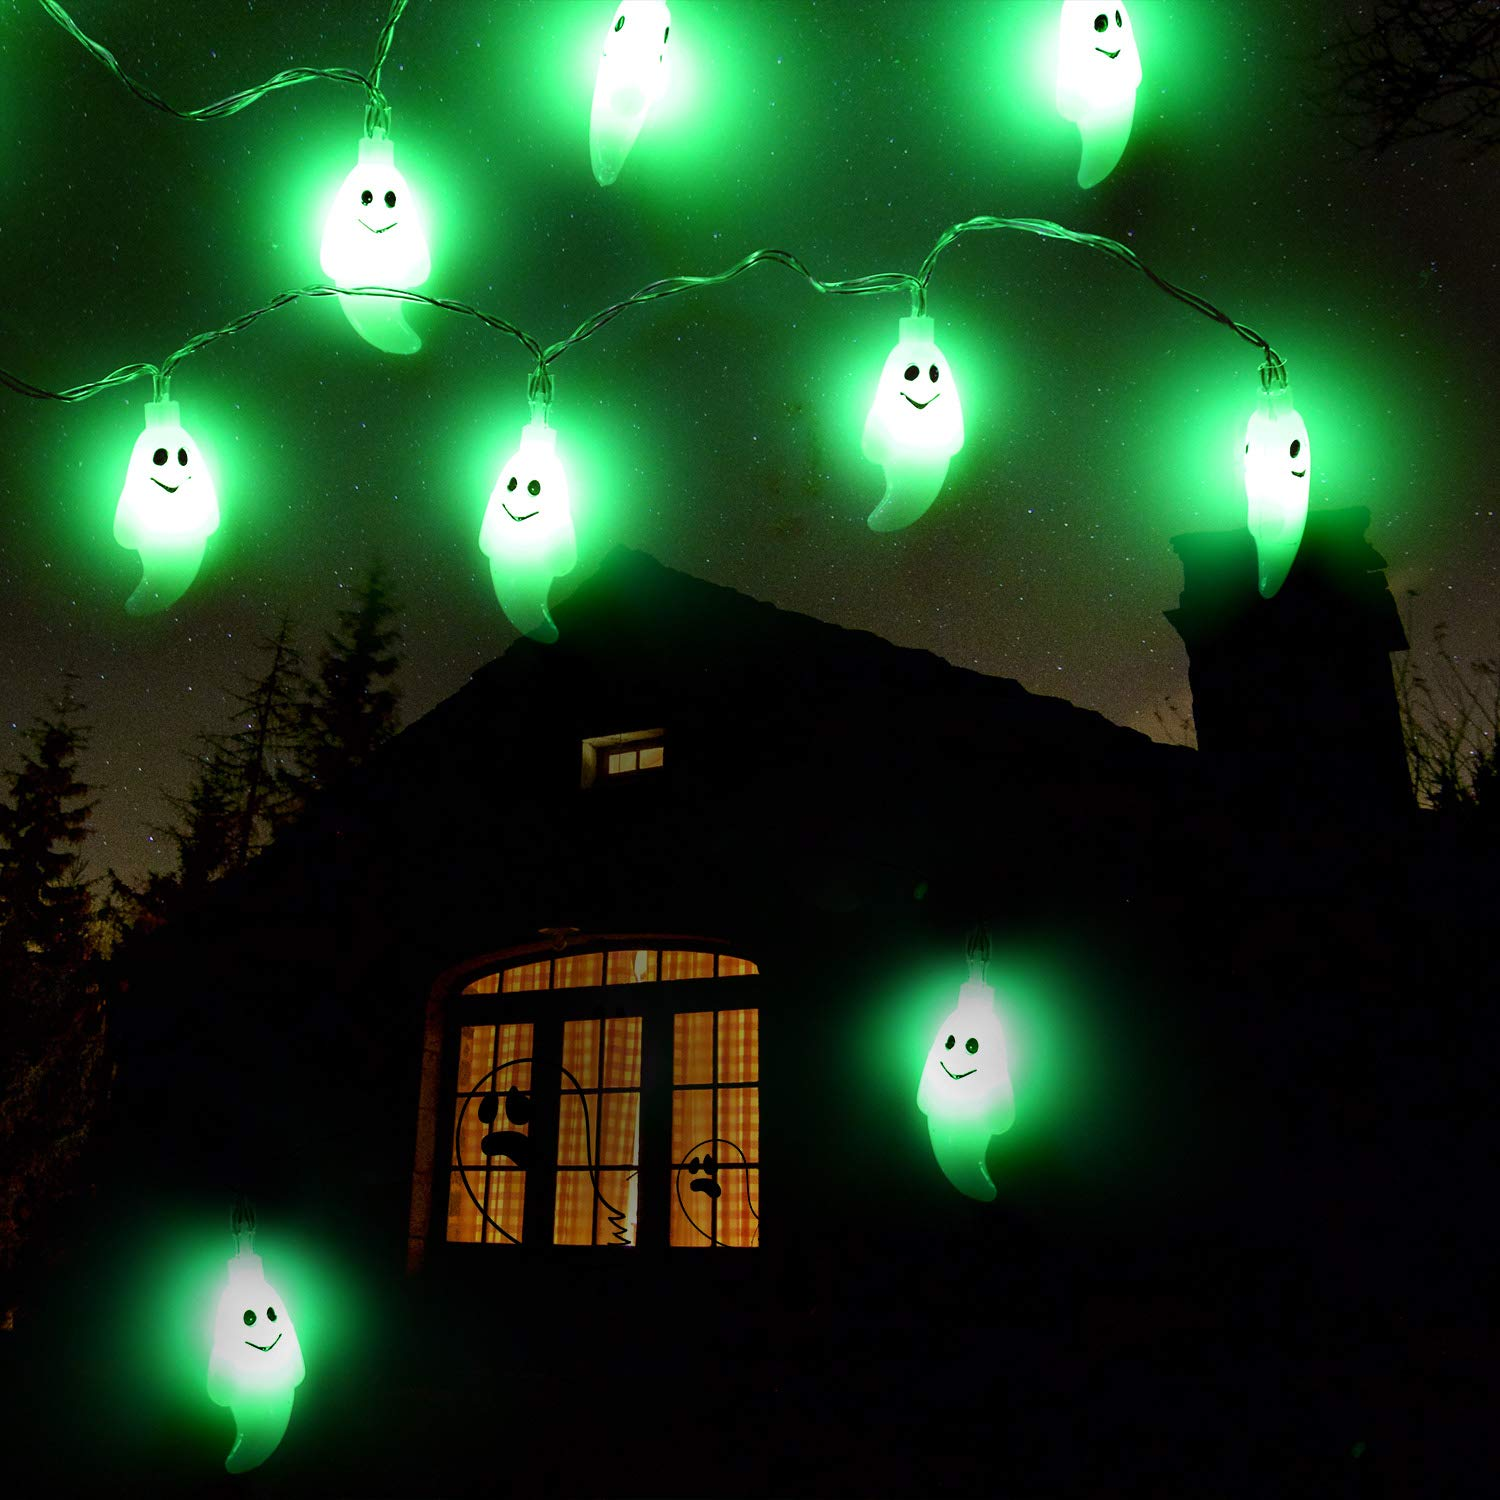 Indoor/Outdoor Halloween String Lights,Light up Halloween String Lights with Battery Operated,30 LED 10.8ft Holiday Lights for Halloween Party Decor,Dress up Your Home,Porch,Garden Or Yard.